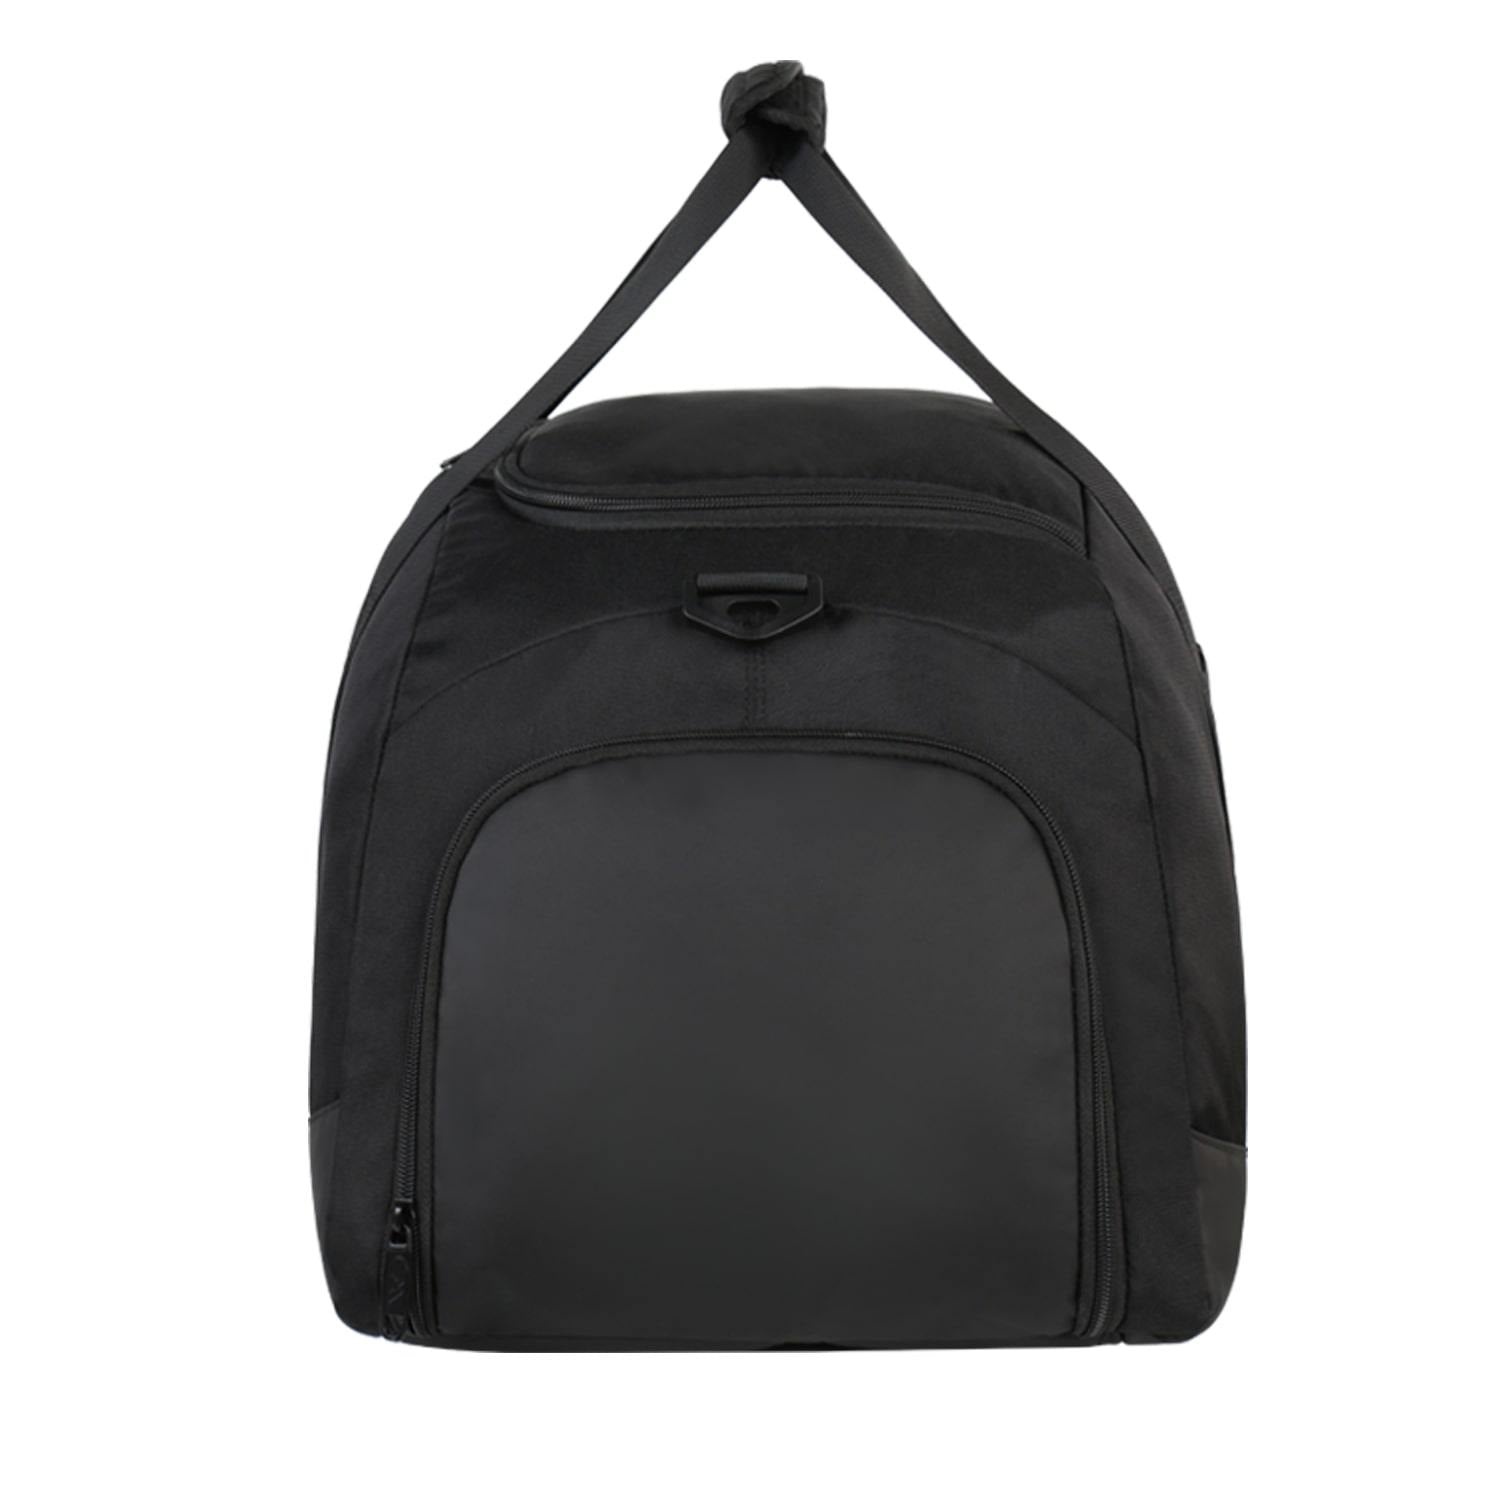 Matein Sports Gym Bag - travel laptop backpack